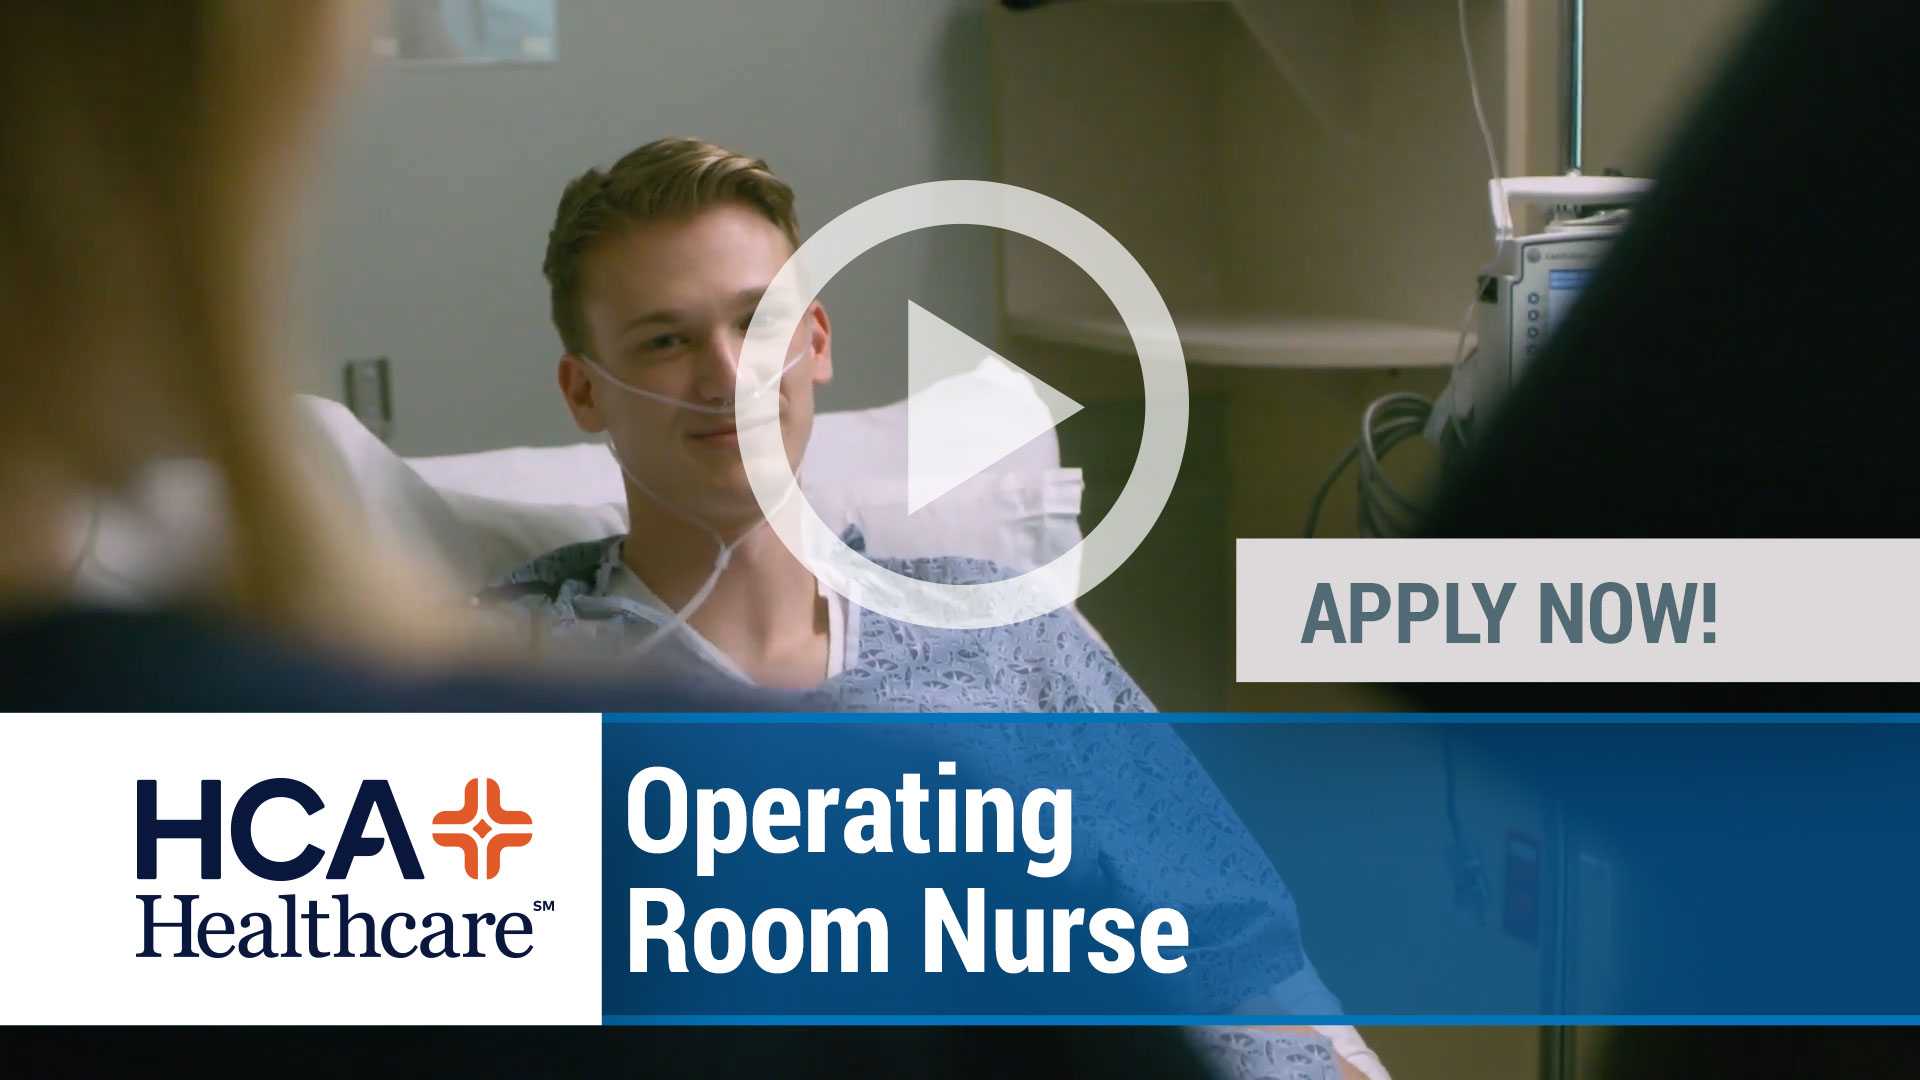 Watch our careers video for available job opening Operating Room Nurse in Reston, Virginia